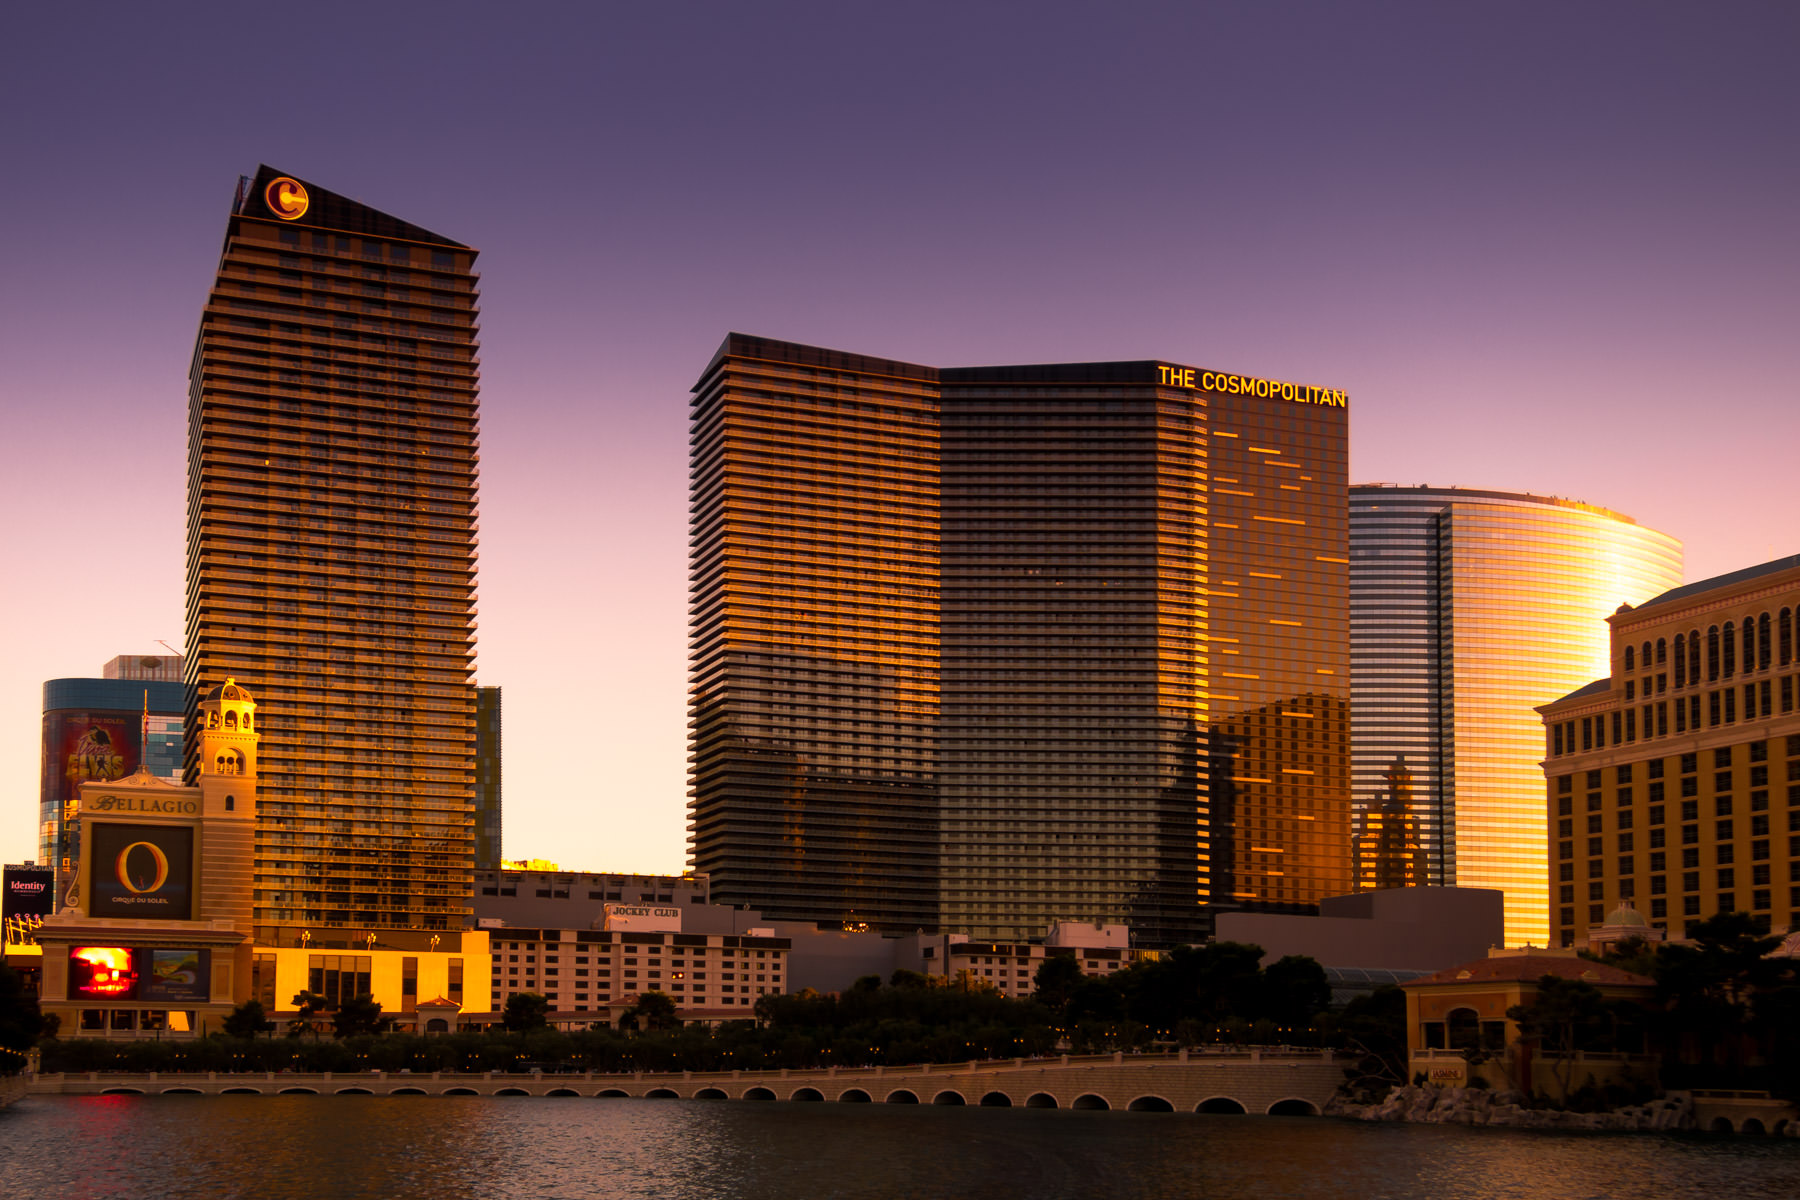 The sun sets on Las Vegas, giving golden hues to The Cosmopolitan of Las Vegas.